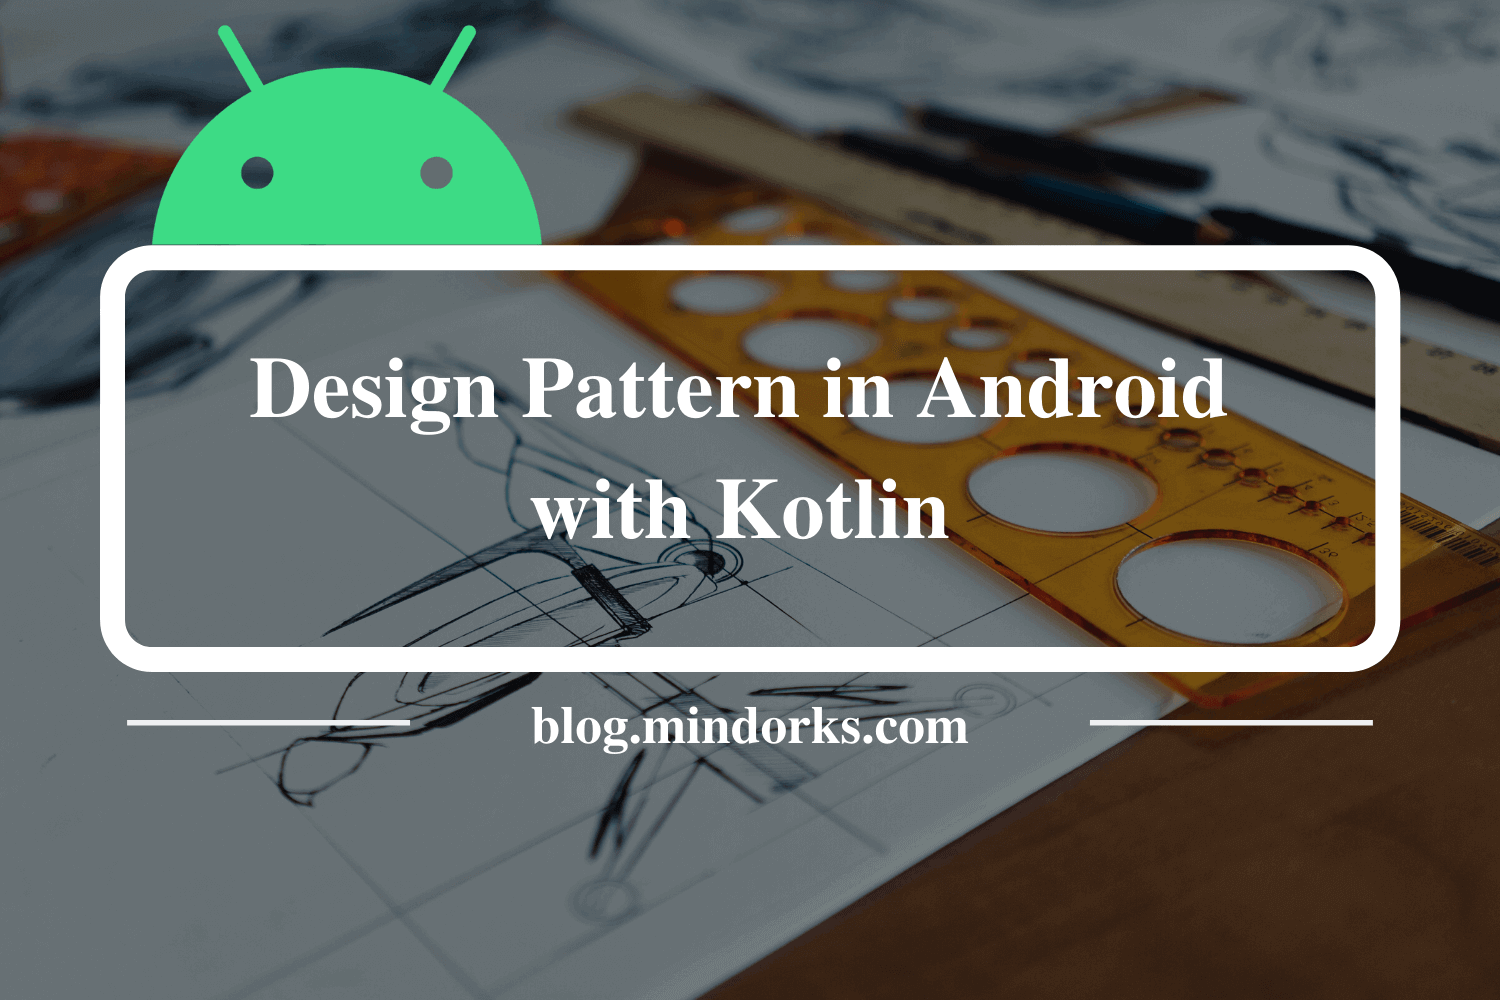 Mastering Design Patterns in Android with Kotlin